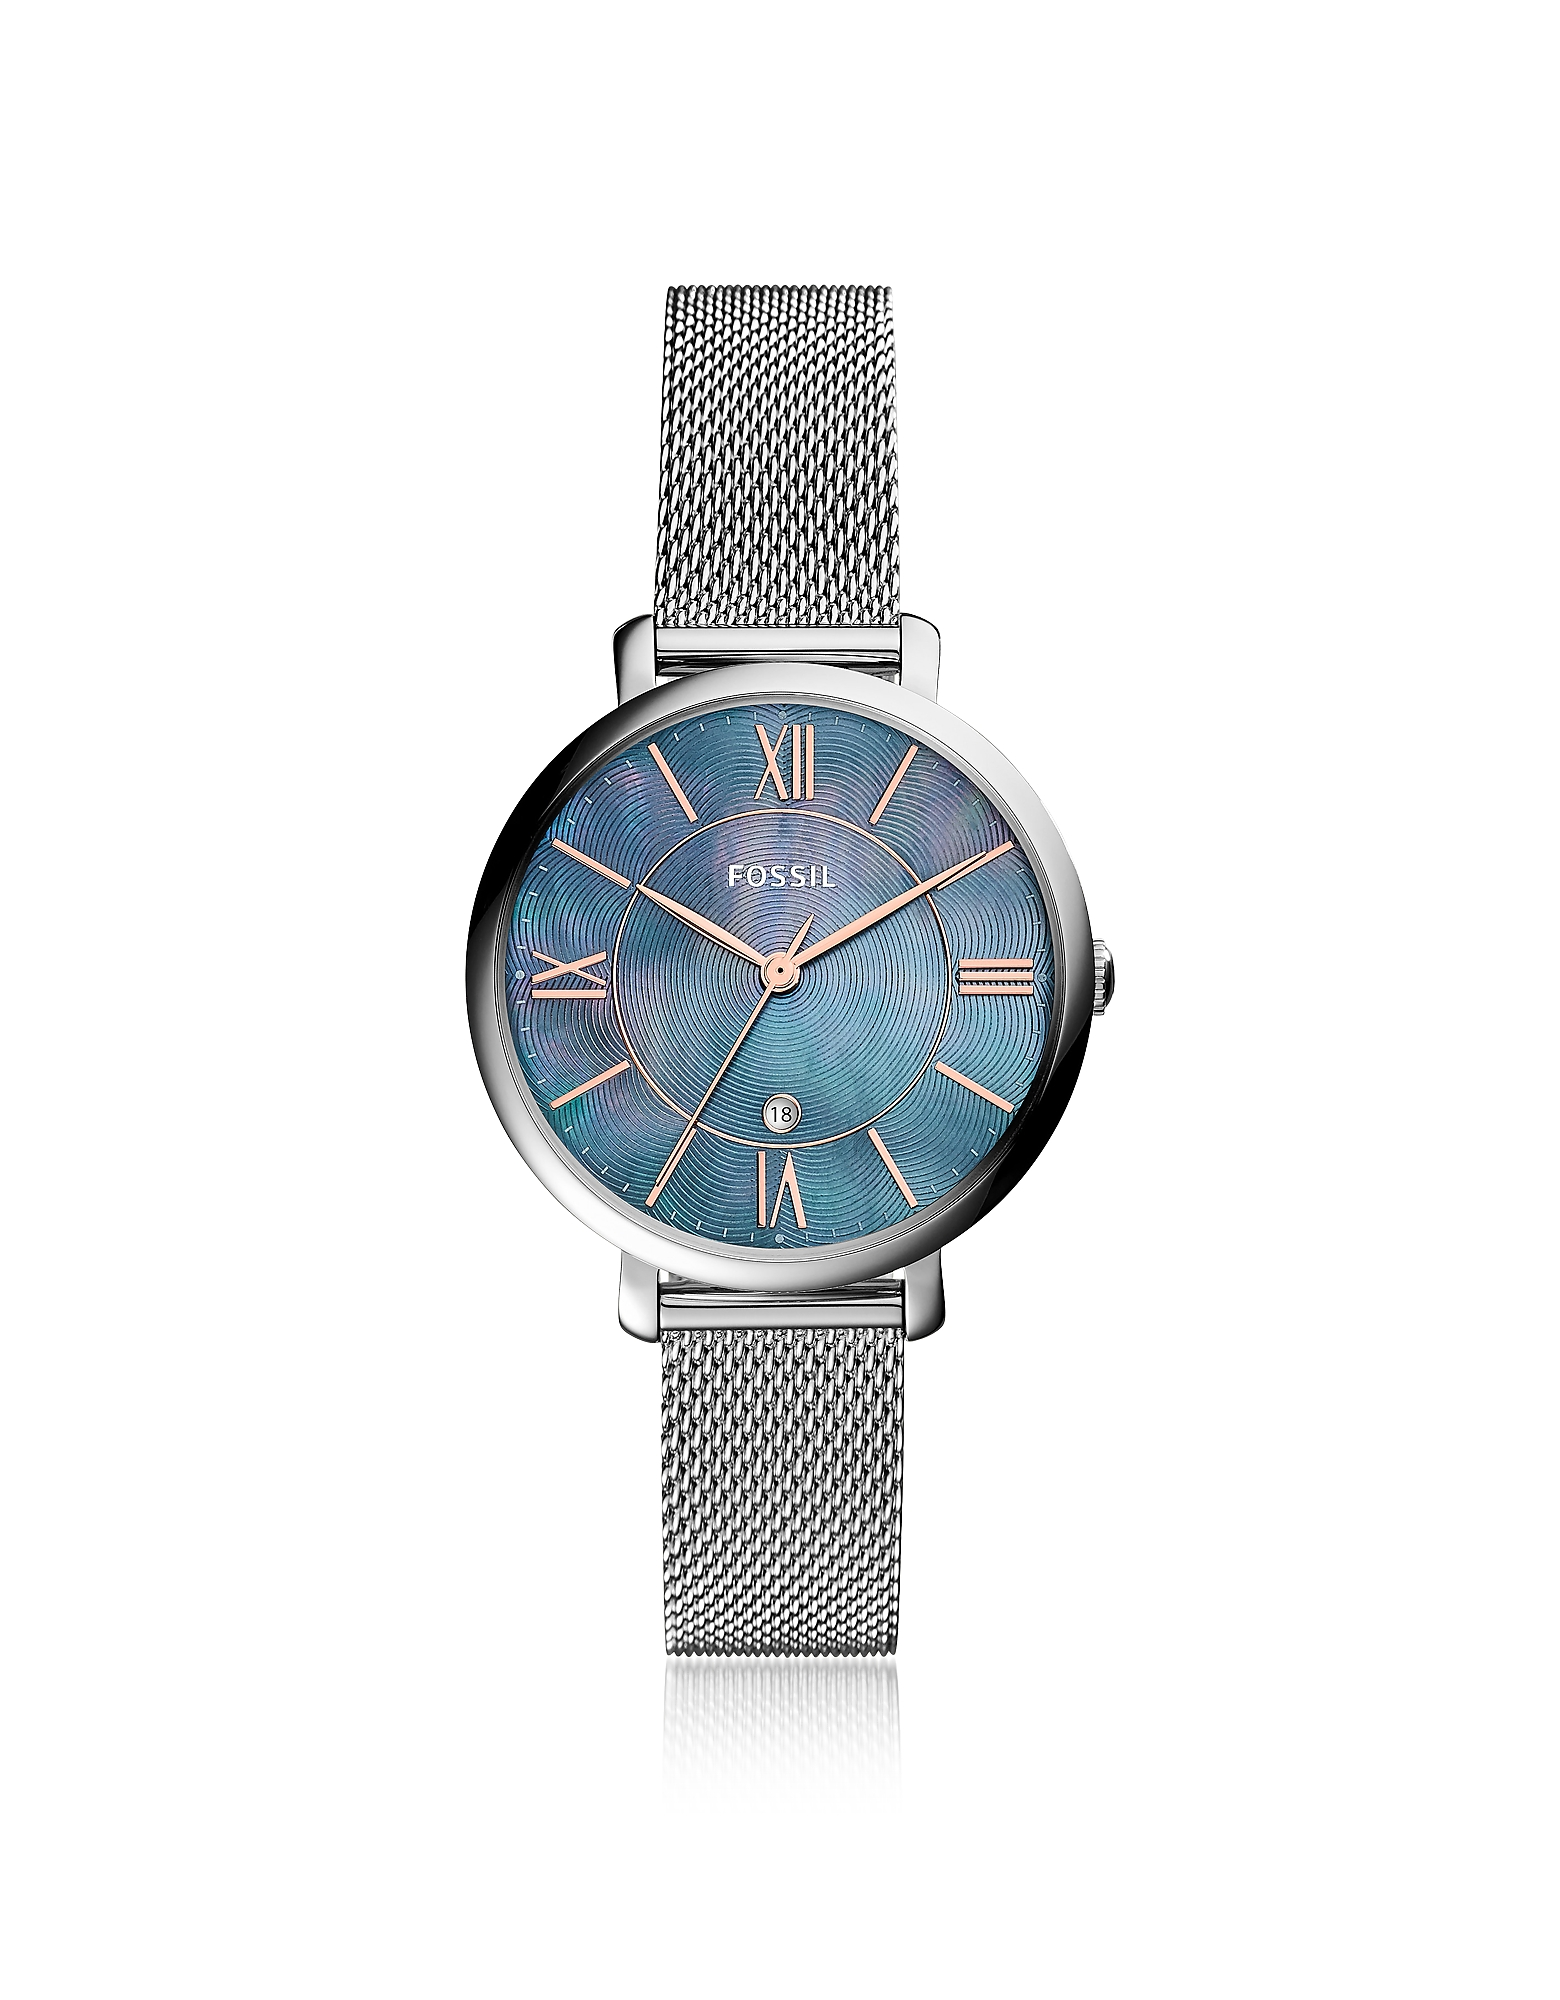 Fossil Women's Watches, Jacqueline Three Hand Date Mesh Stainless Steel Women's Watch